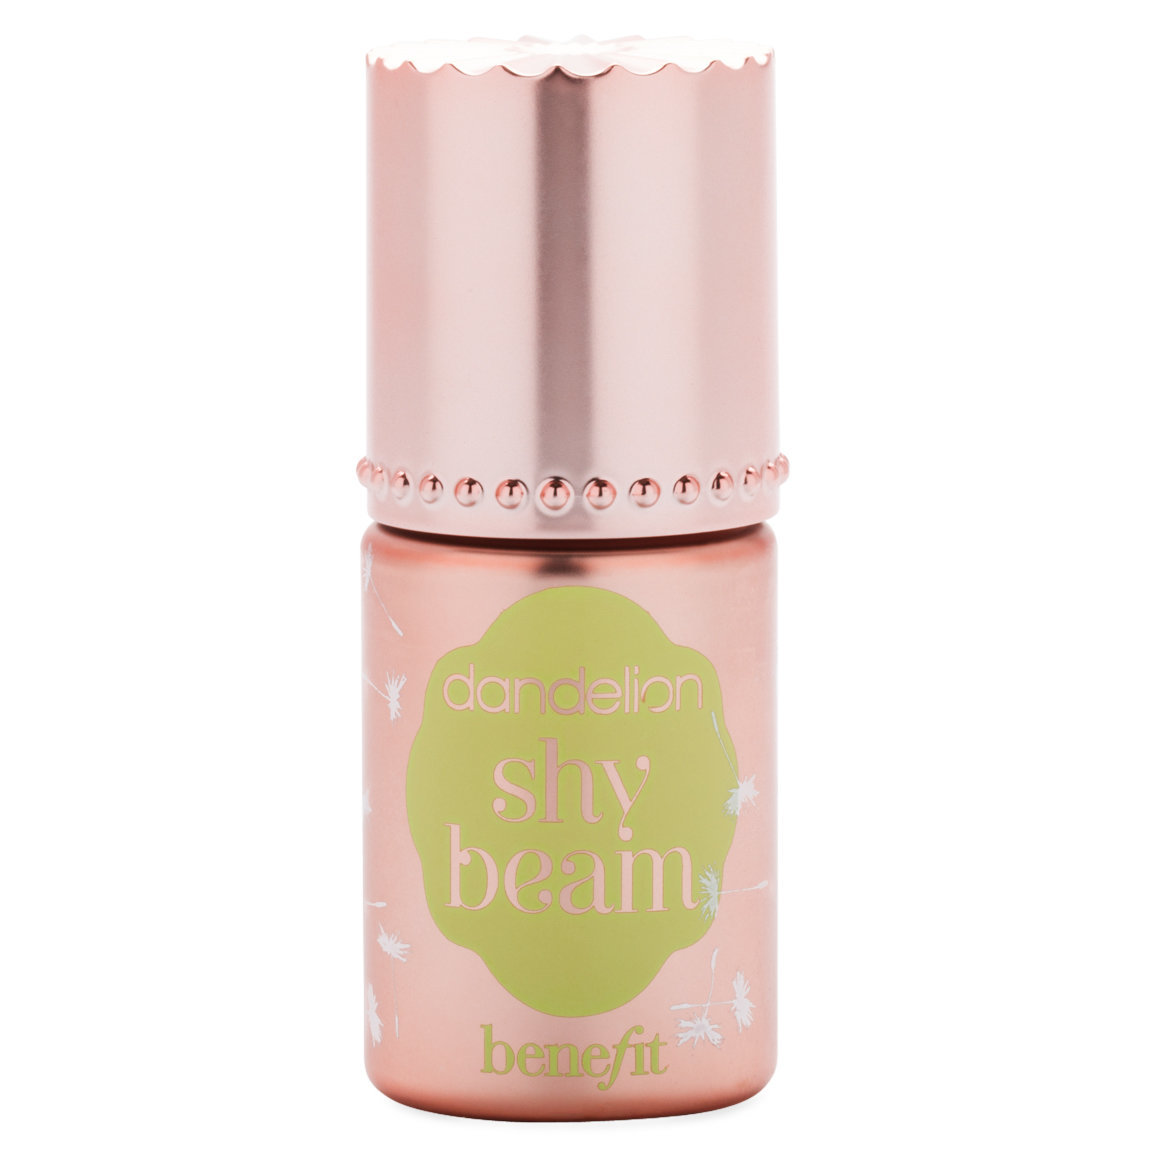 Benefit Cosmetics Dandelion shy beam Liquid Highlighter product smear.